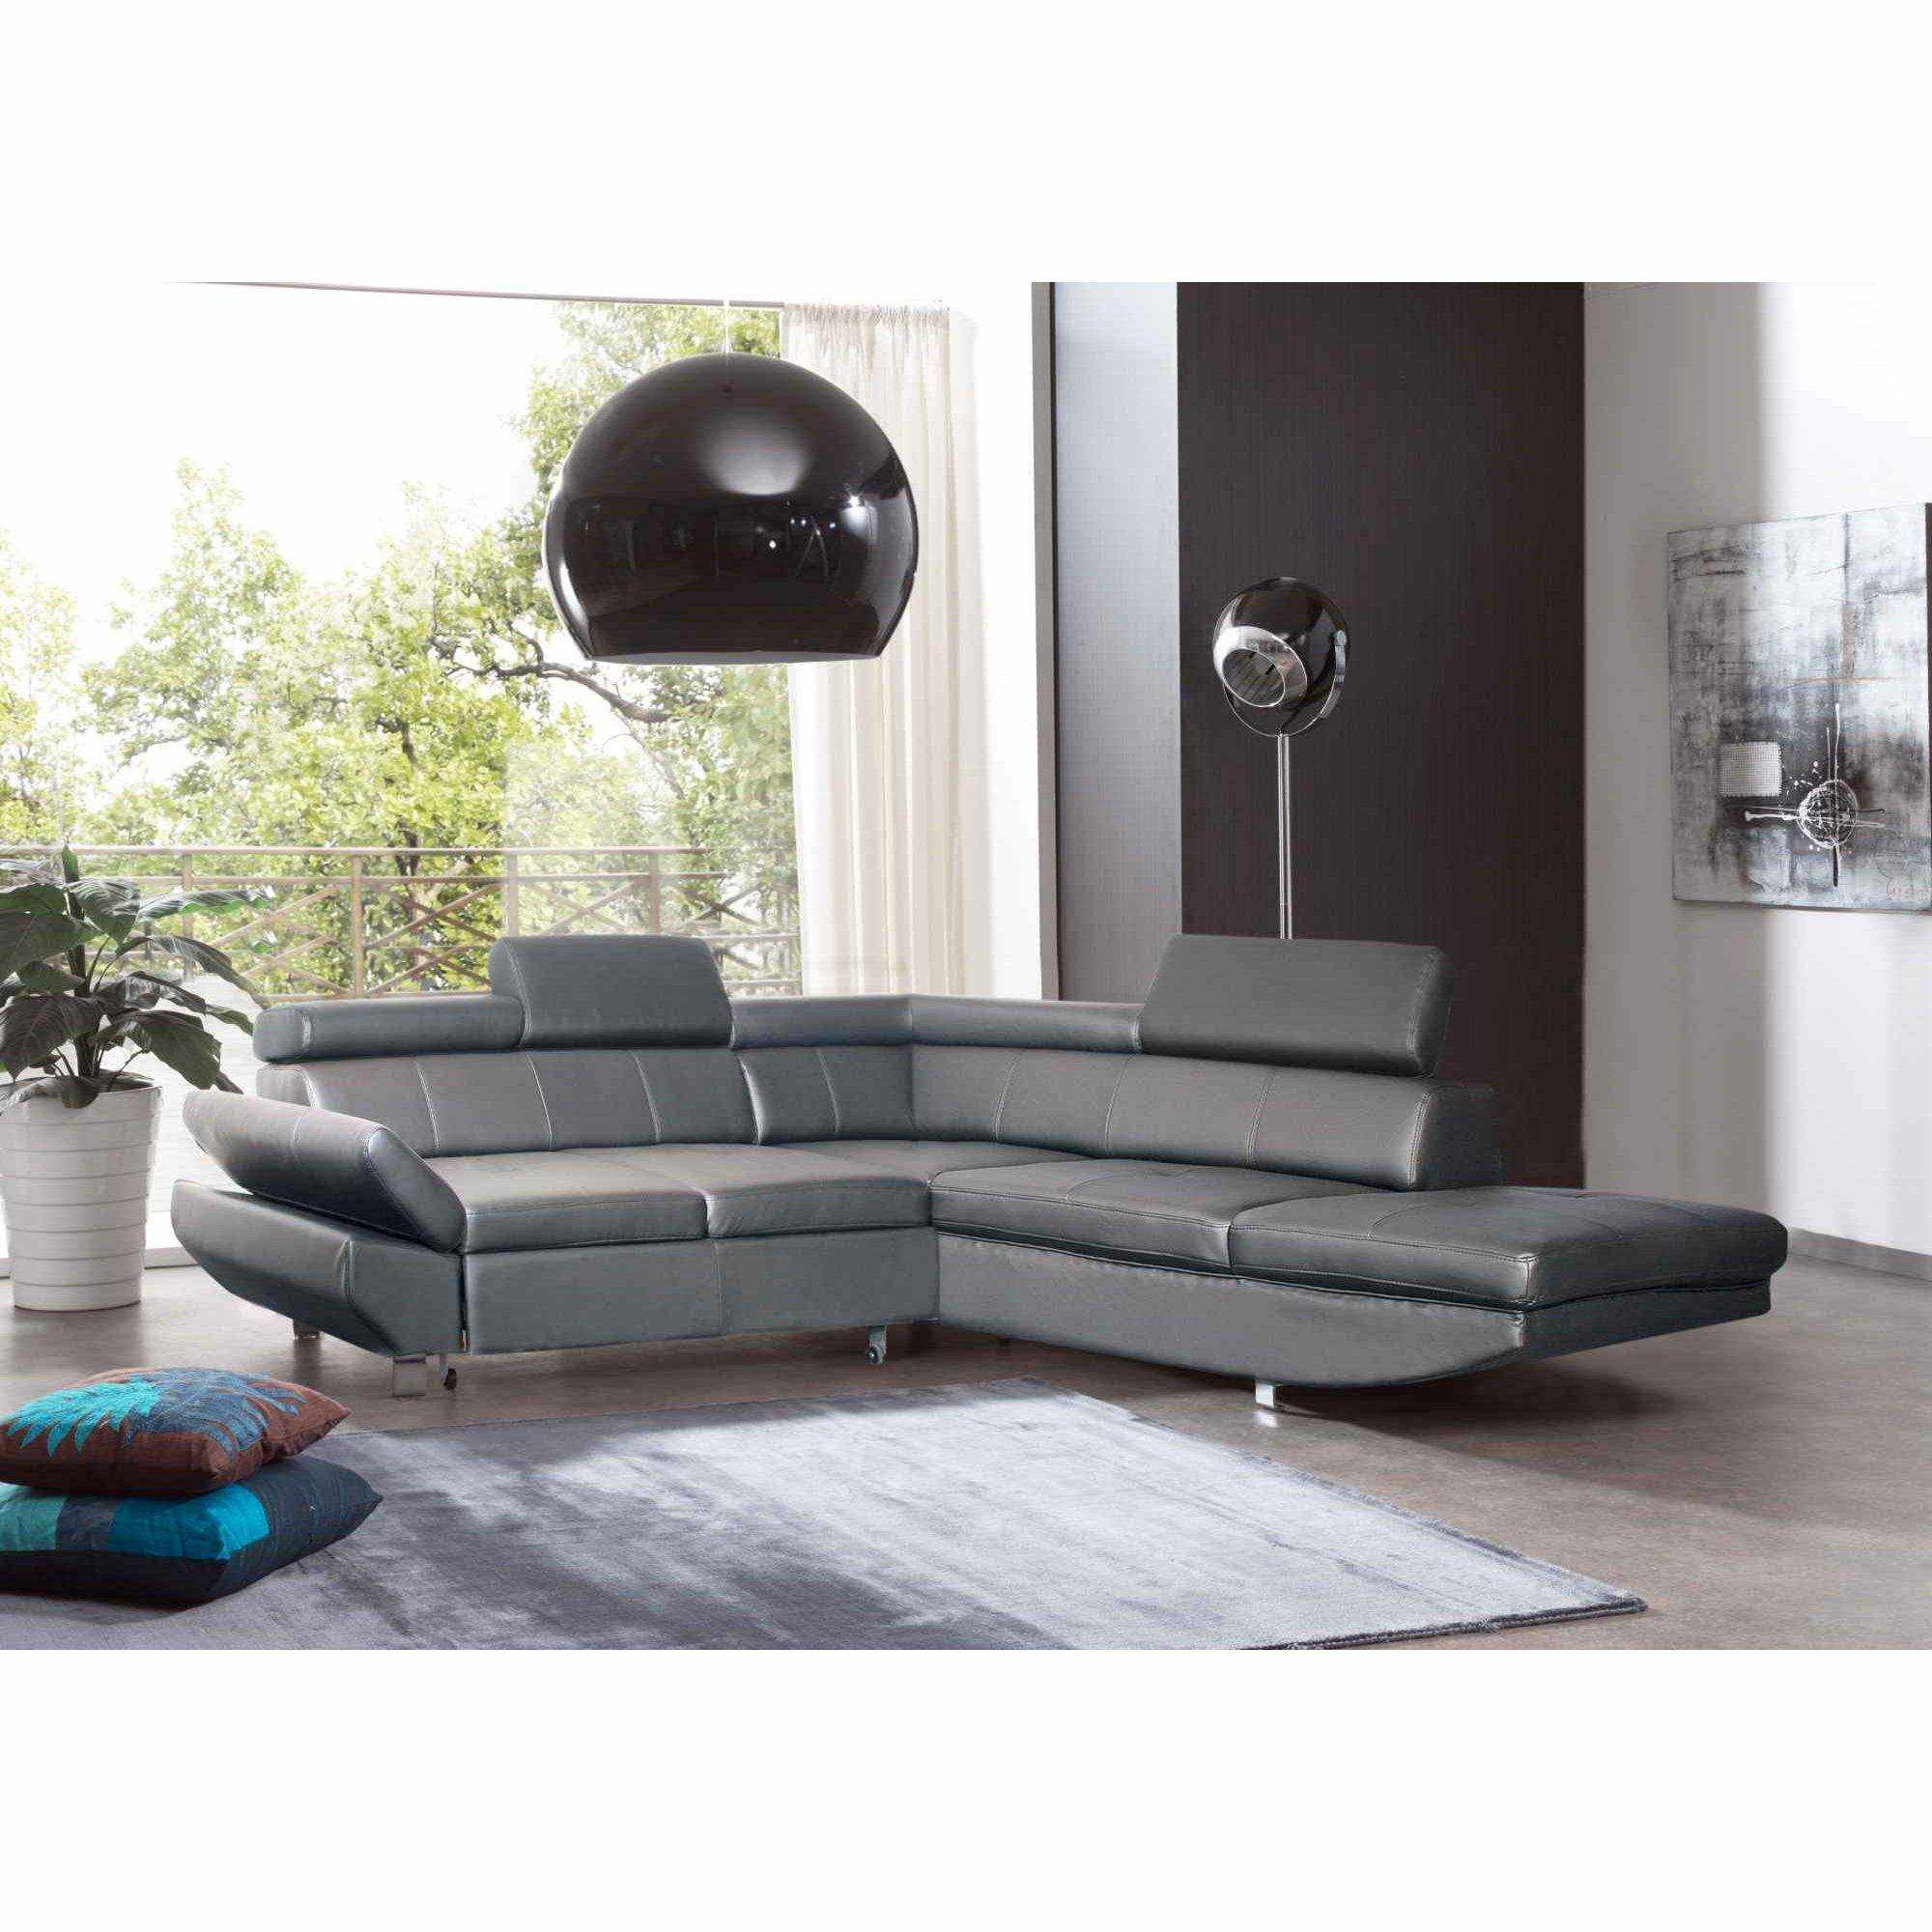 Deco in paris canape d angle design convertible gris for Canape angle design